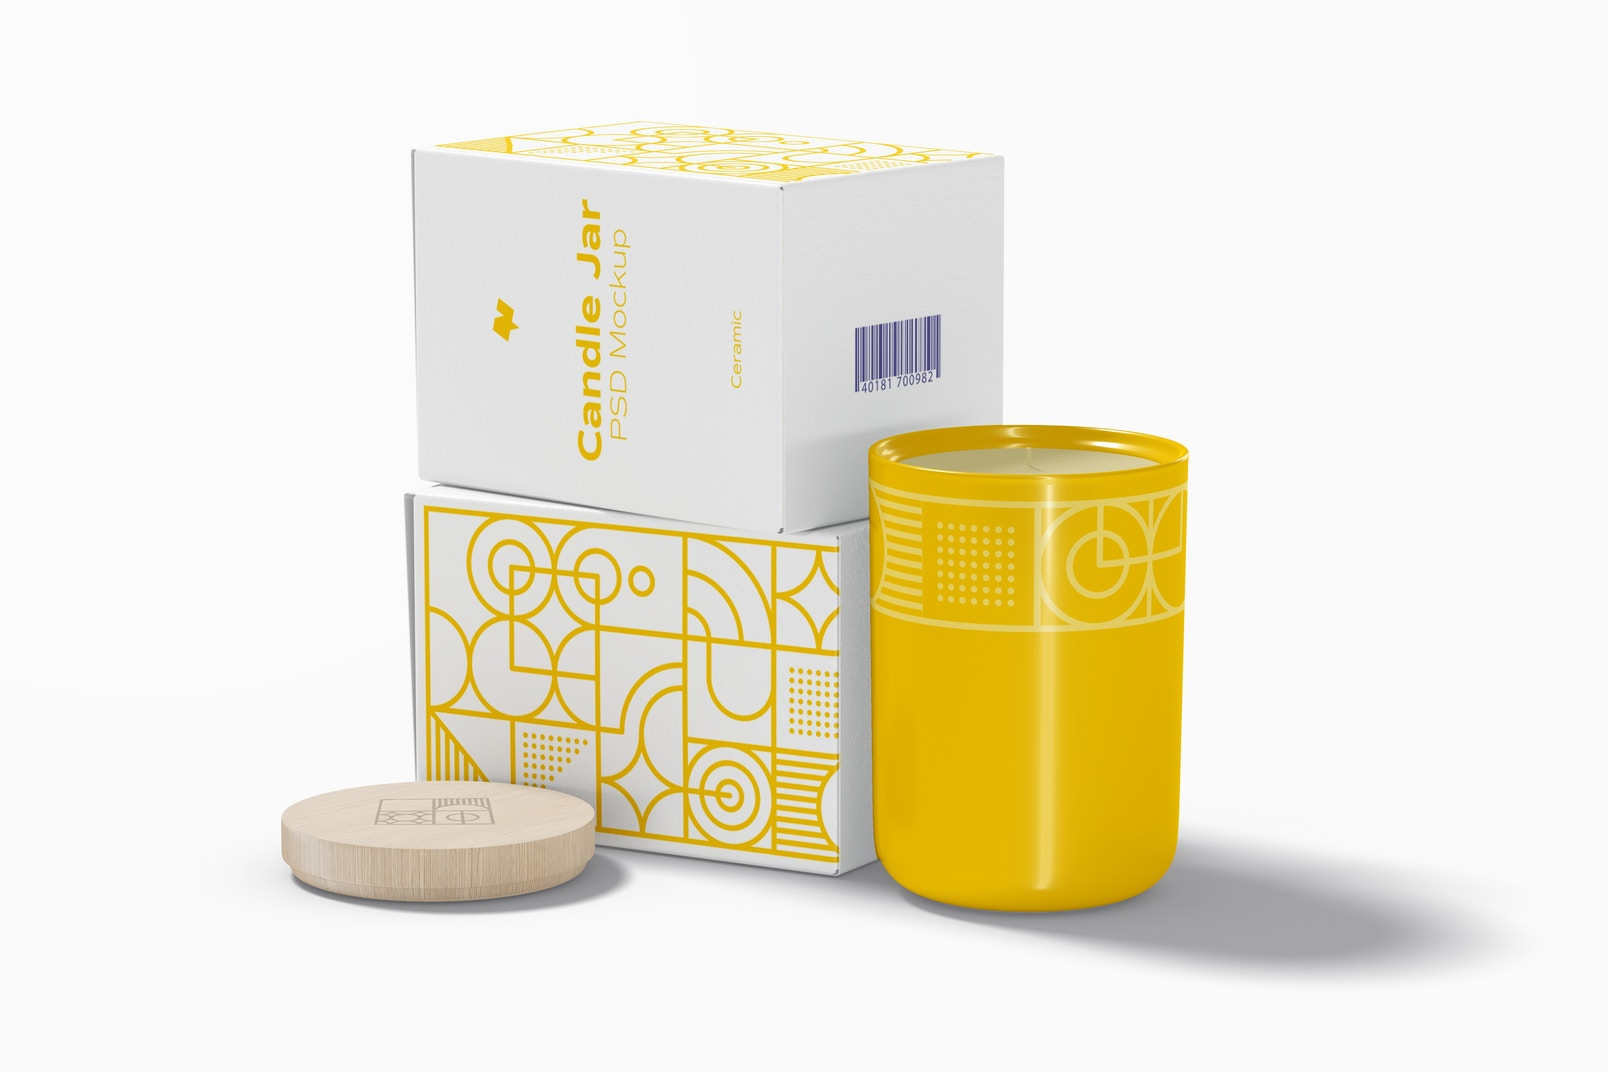 Ceramic Candle Jar with Boxes Mockup, Side View